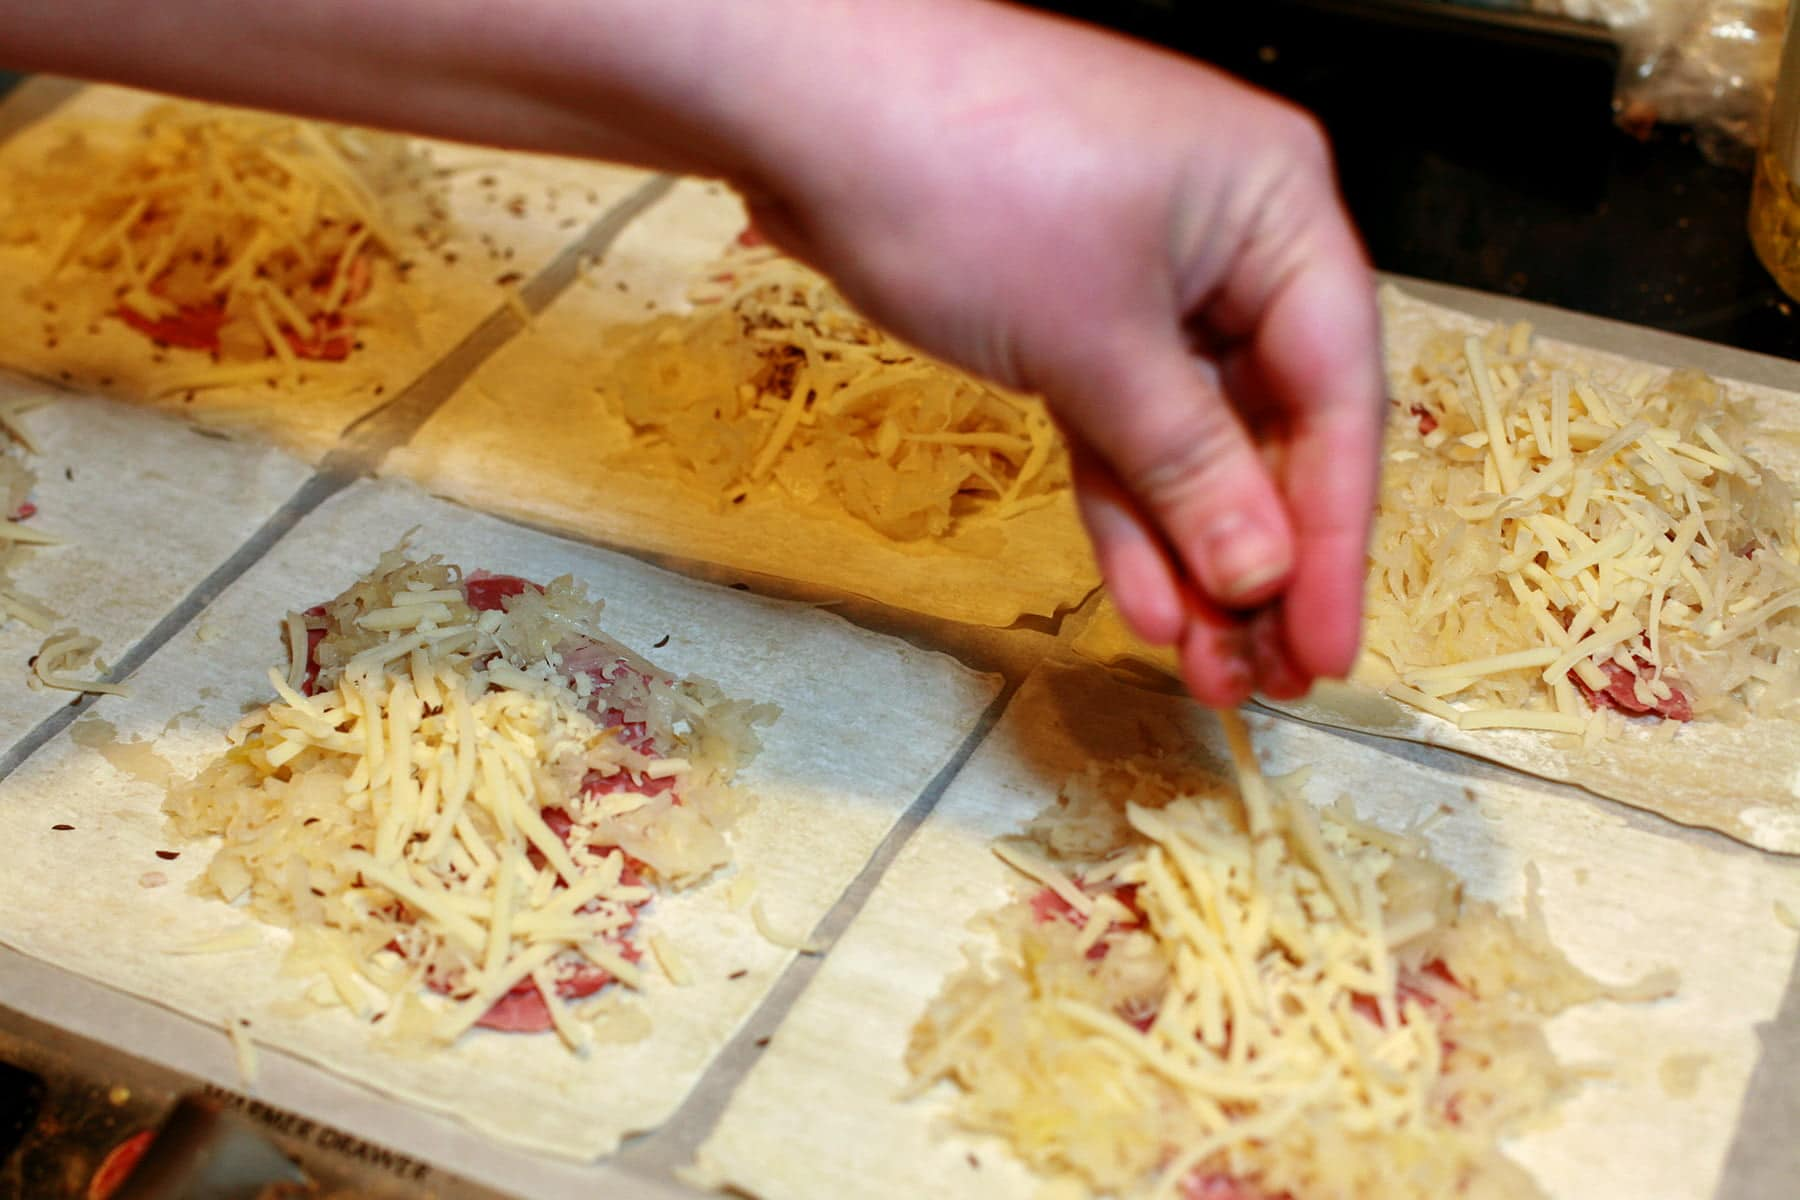 Wonton wrappers are arranged on a work surface. Each has meat, sauerkraut, and swiss cheese on top. A hand sprinkles caraway seeds over them.